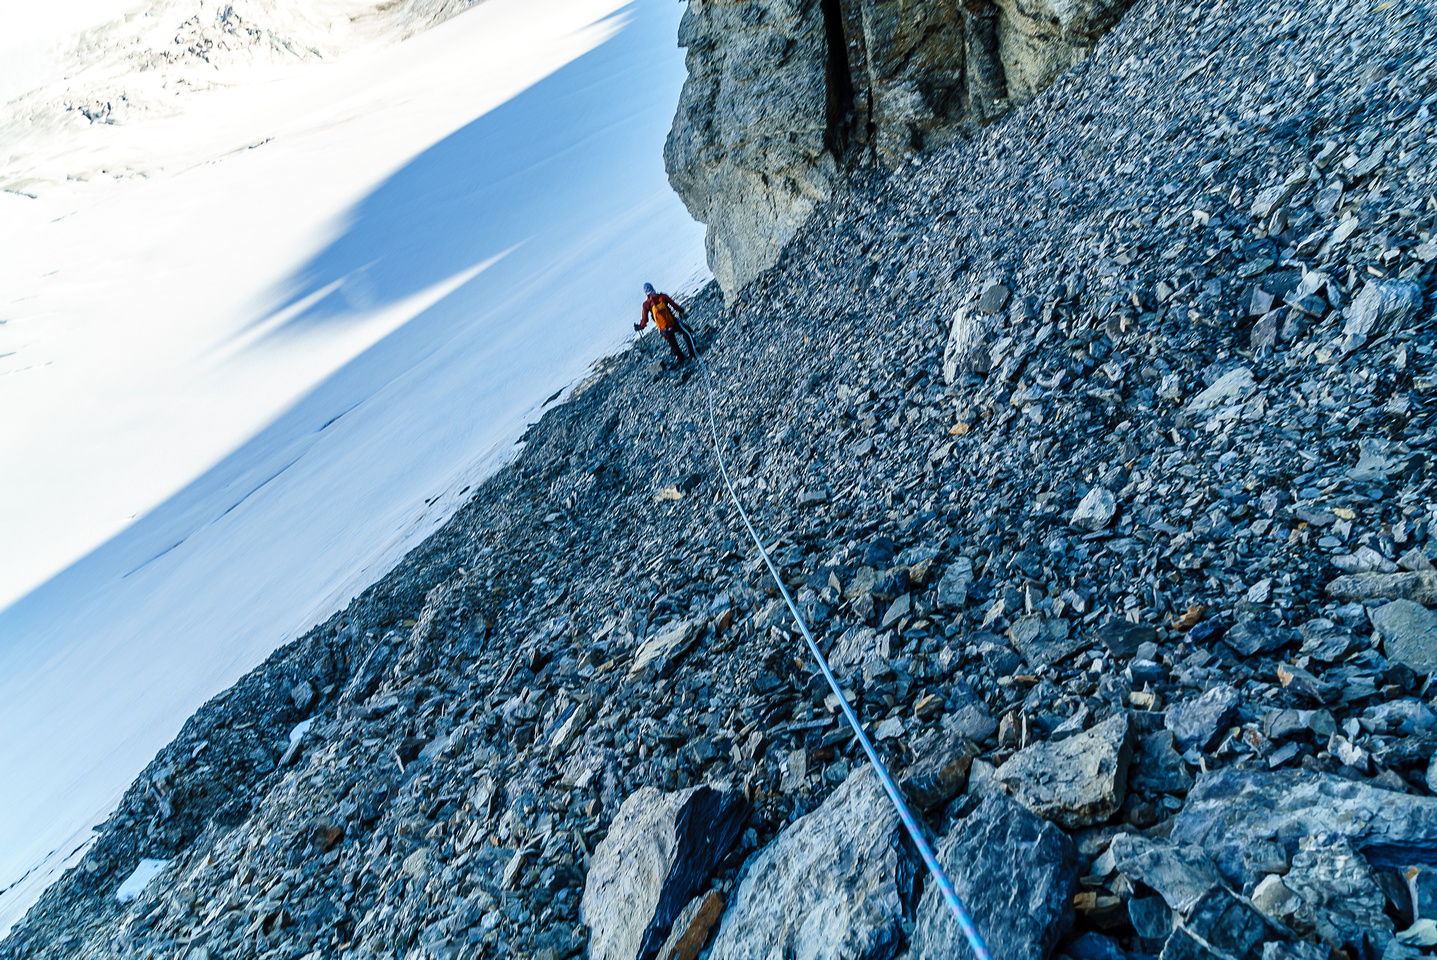 The gravel was typical loose glacier till, but it was quick to descend.